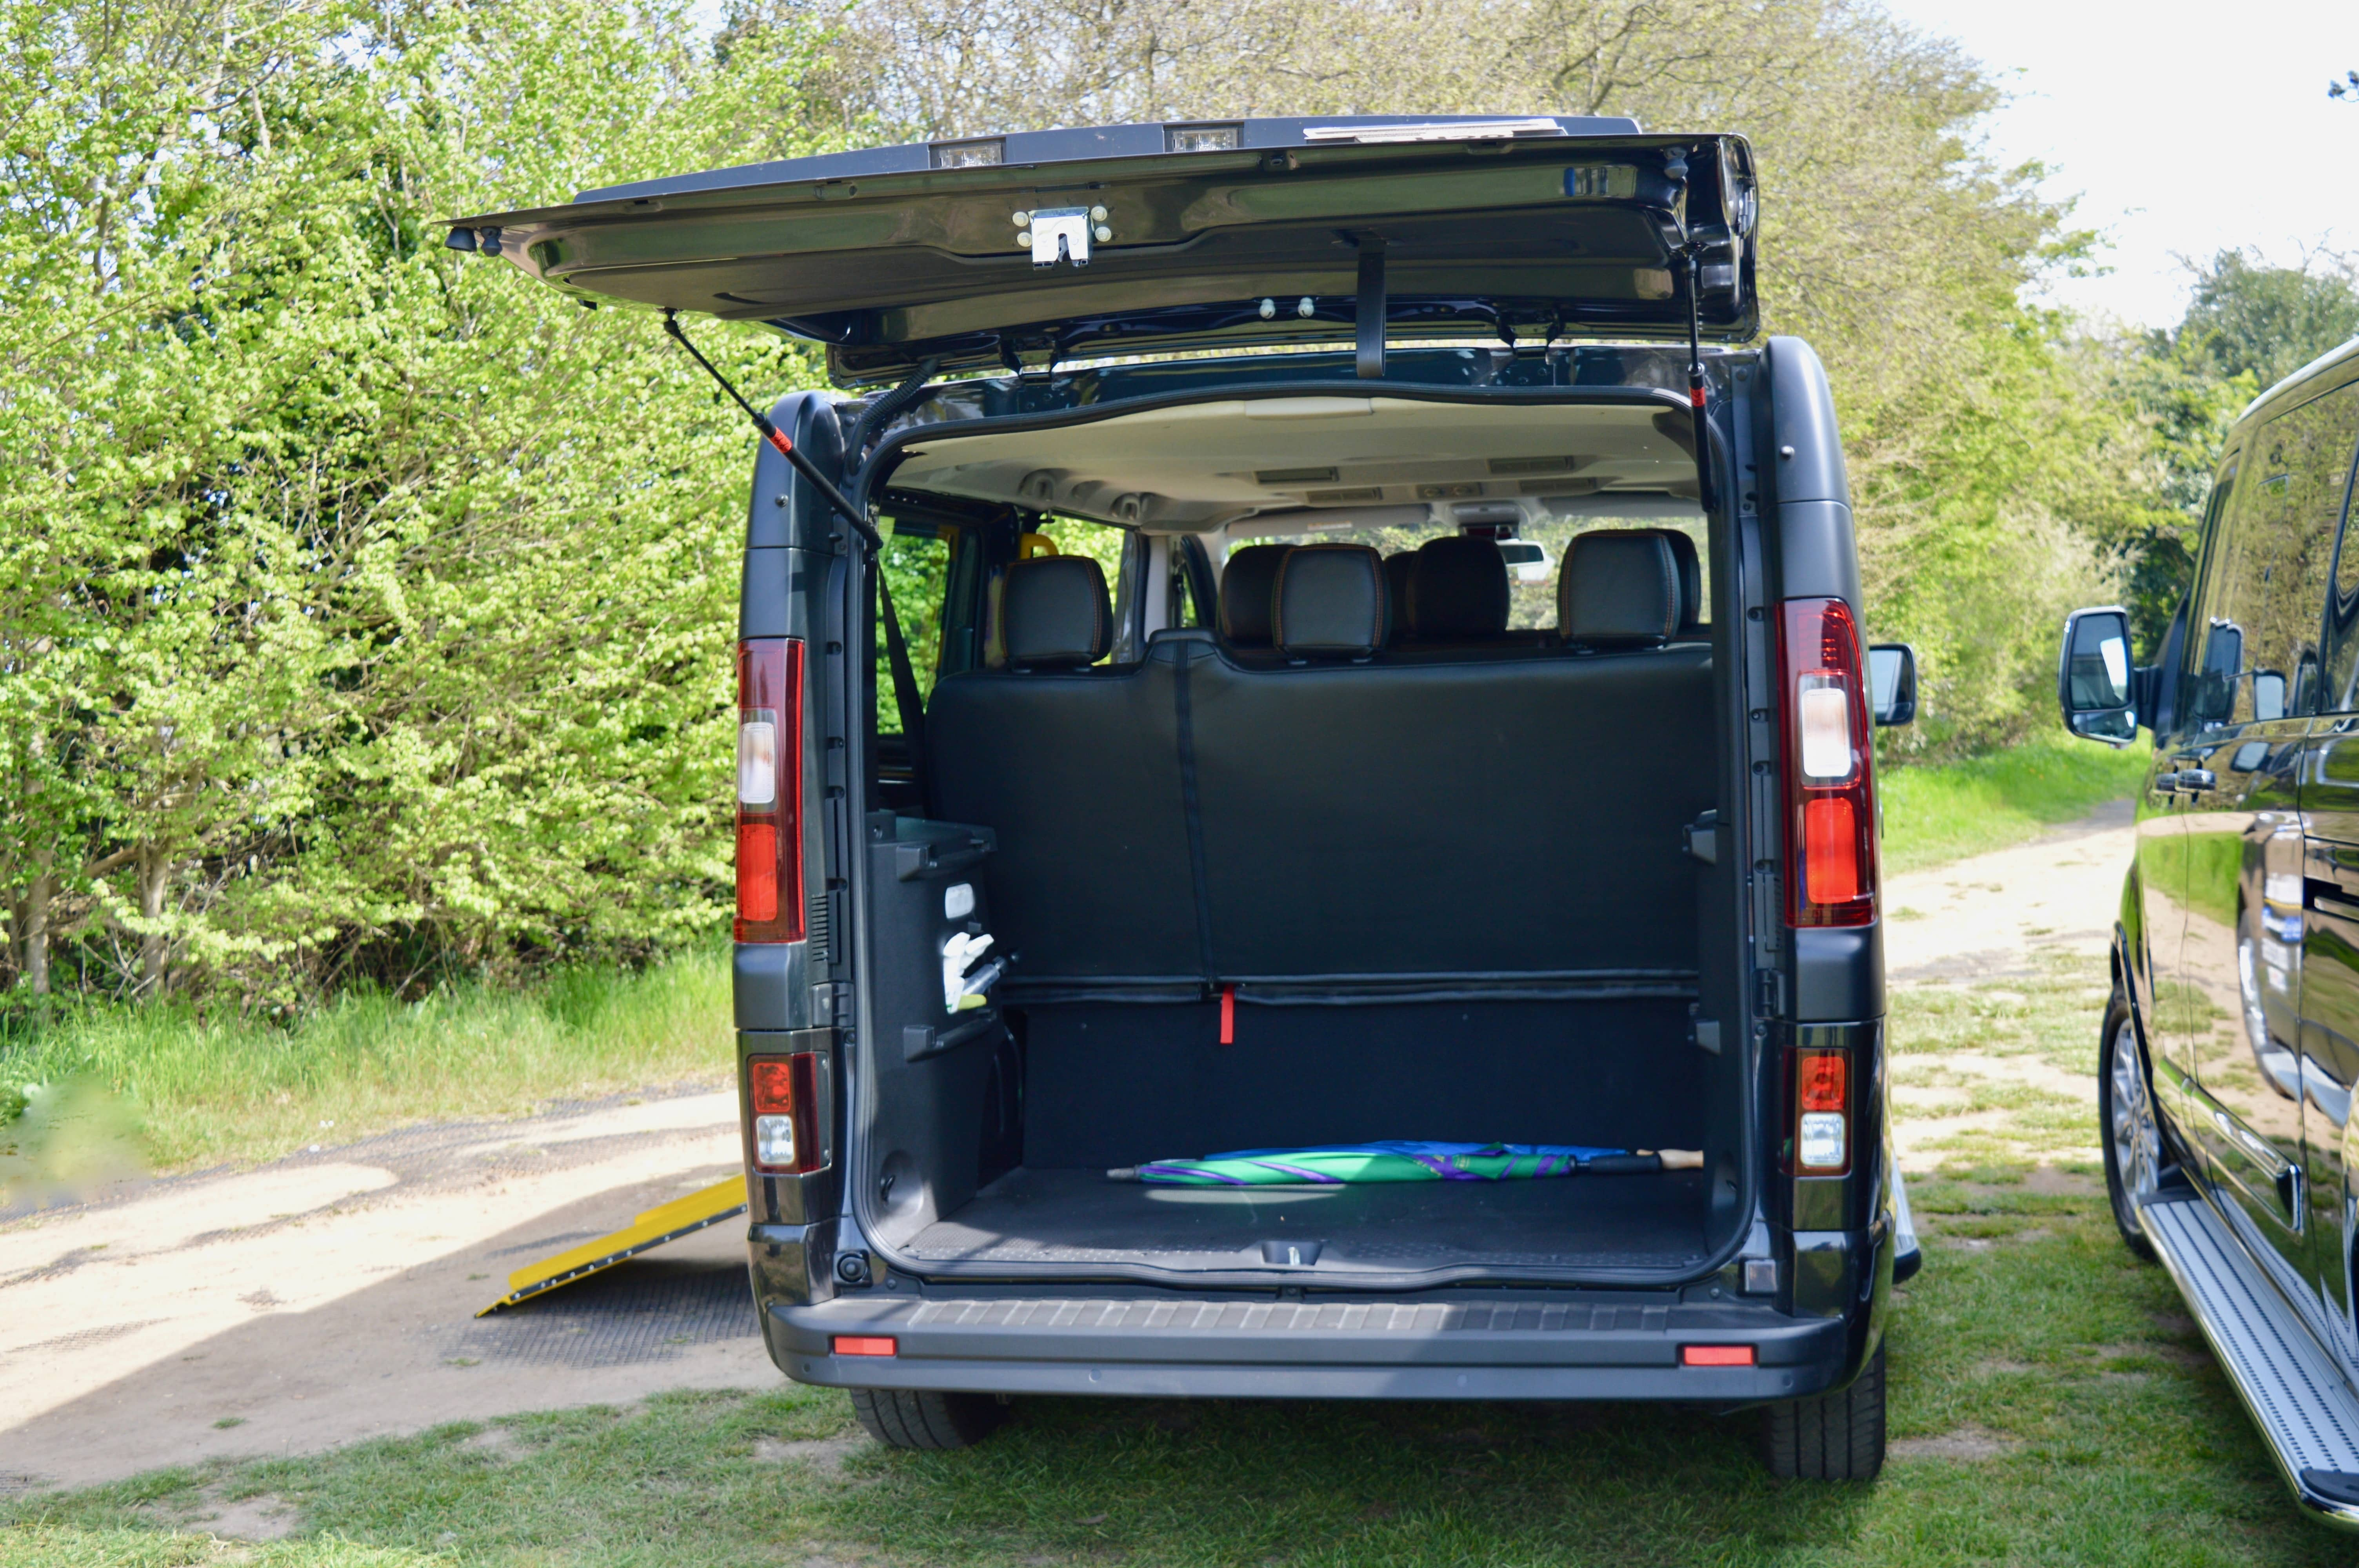 Plenty of boot space for luggage, perfect for airport transfers